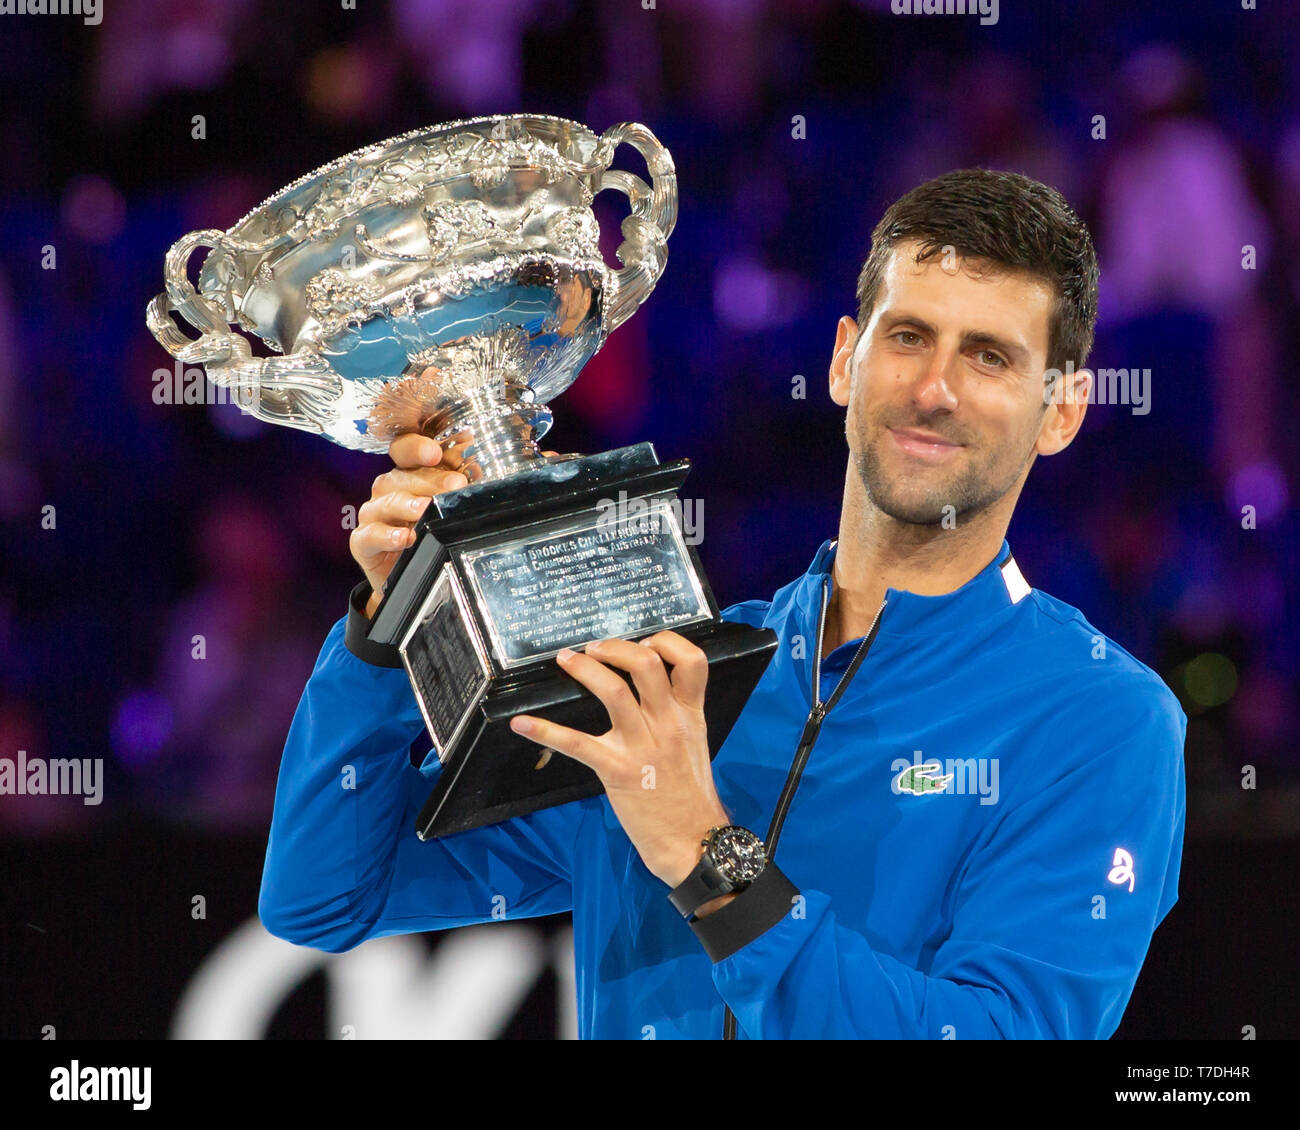 Serbian Tennis Player Novak Djokovic Posing With Trophy Melbourne Park Melbourne Victoria Australia Stock Photo Alamy